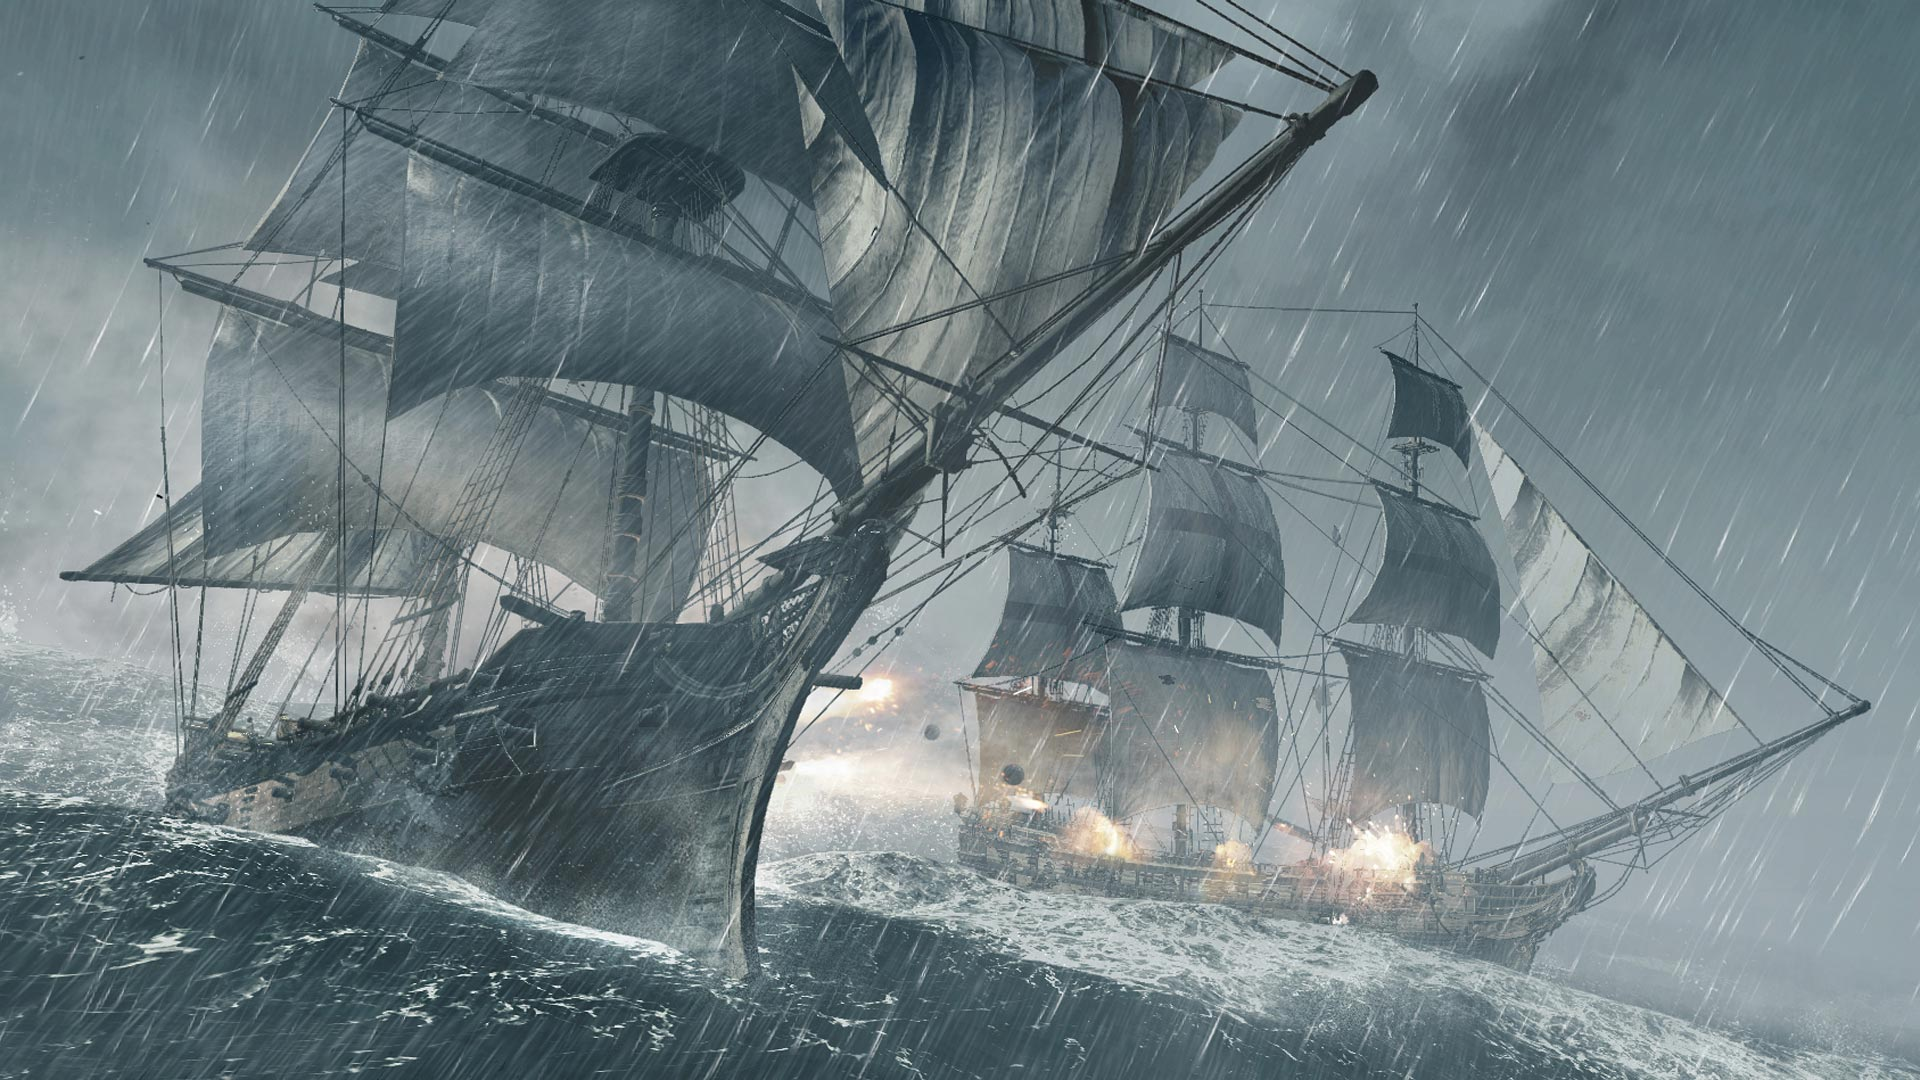 Assassin S Creed Iv Black Flag Wallpaper Image Skylordhilam